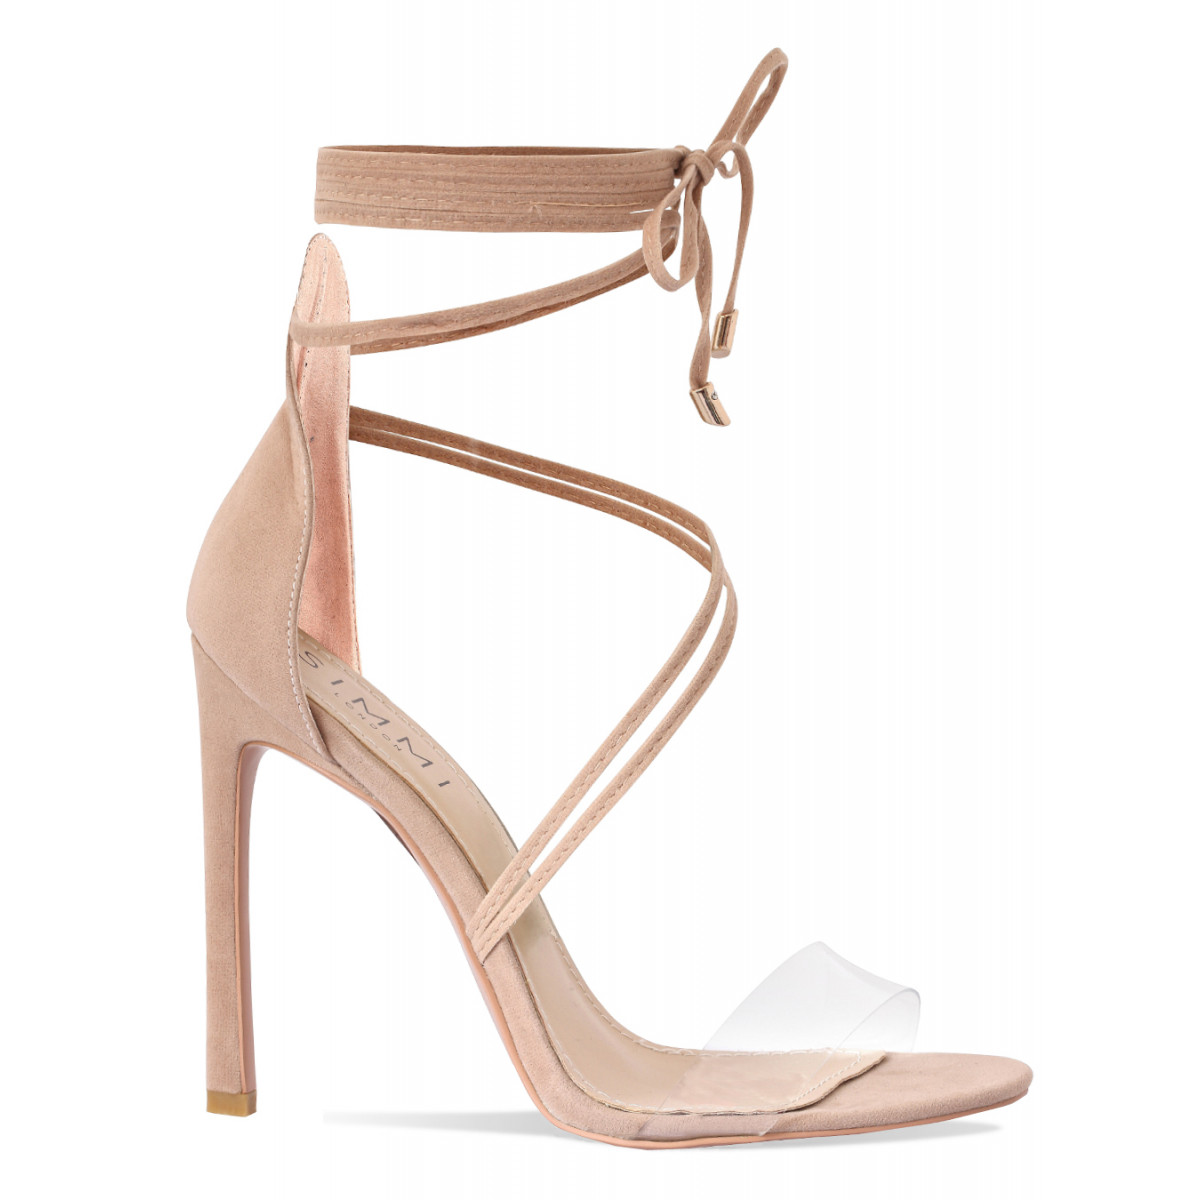 93f124a54cc Kaira Nude Suede Transparent Lace Up Heels : Simmi Shoes